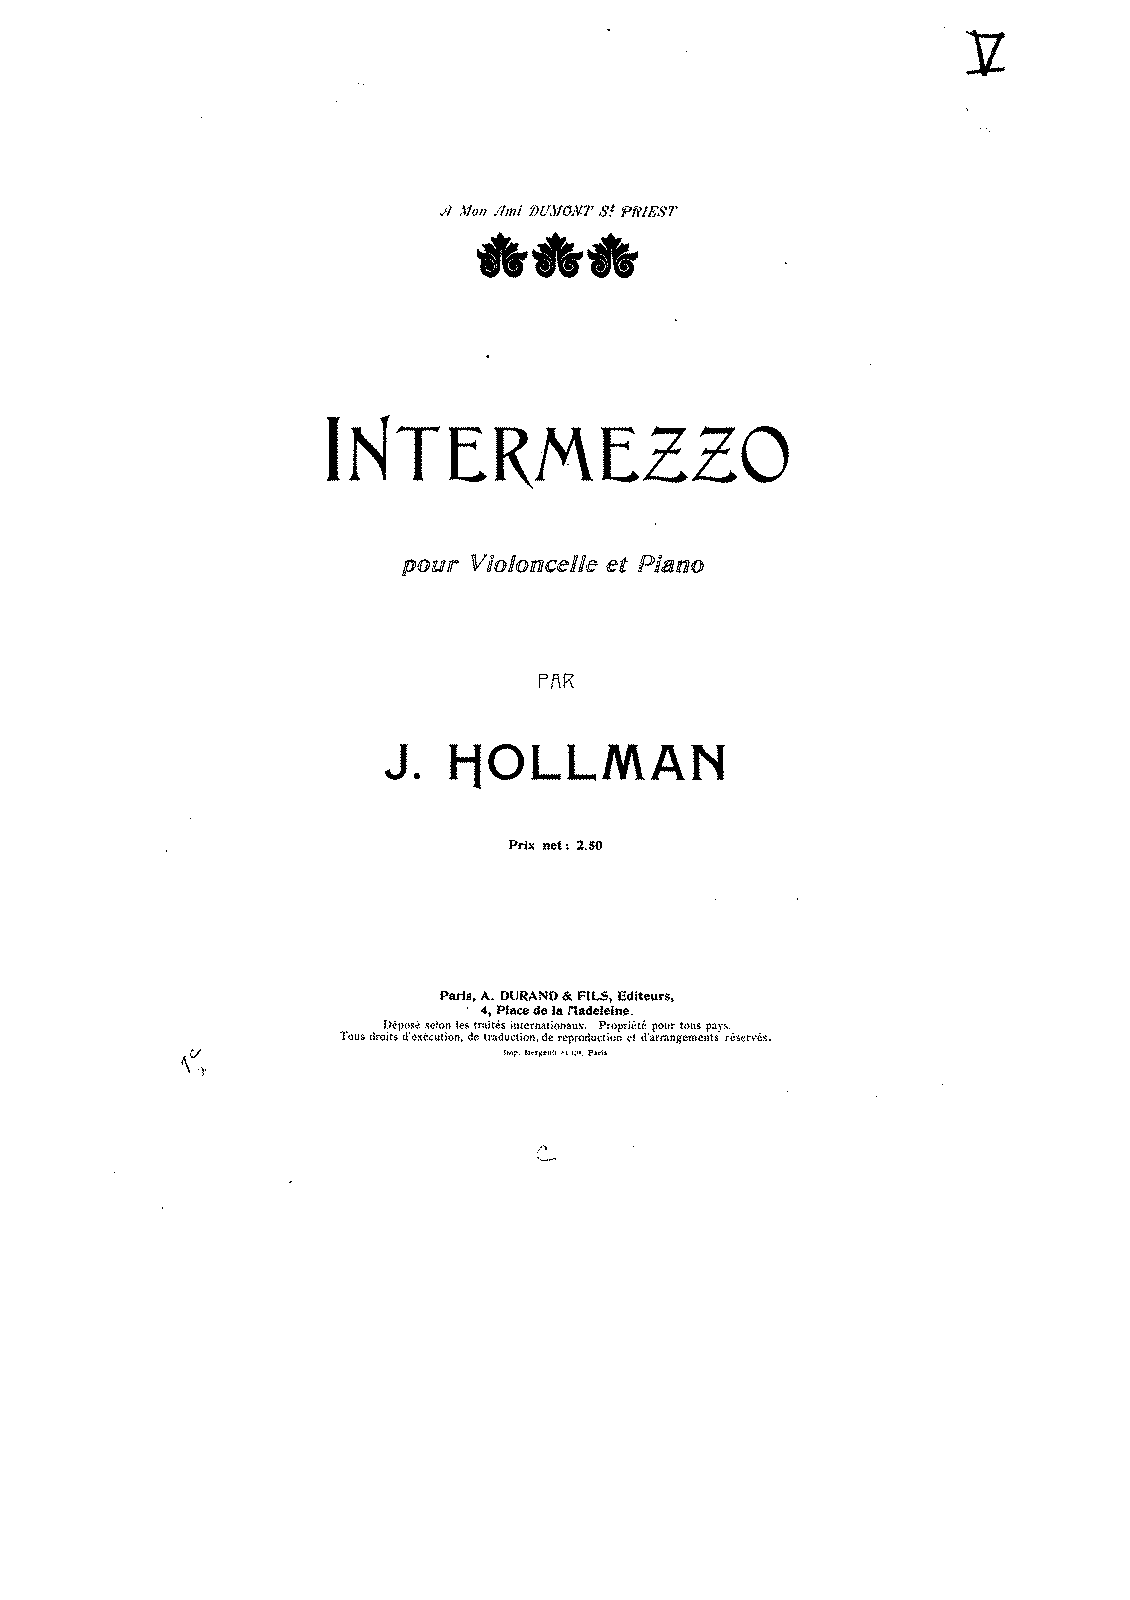 PMLP305591-Hollman - Intermezzo for Cello and Piano pno.pdf